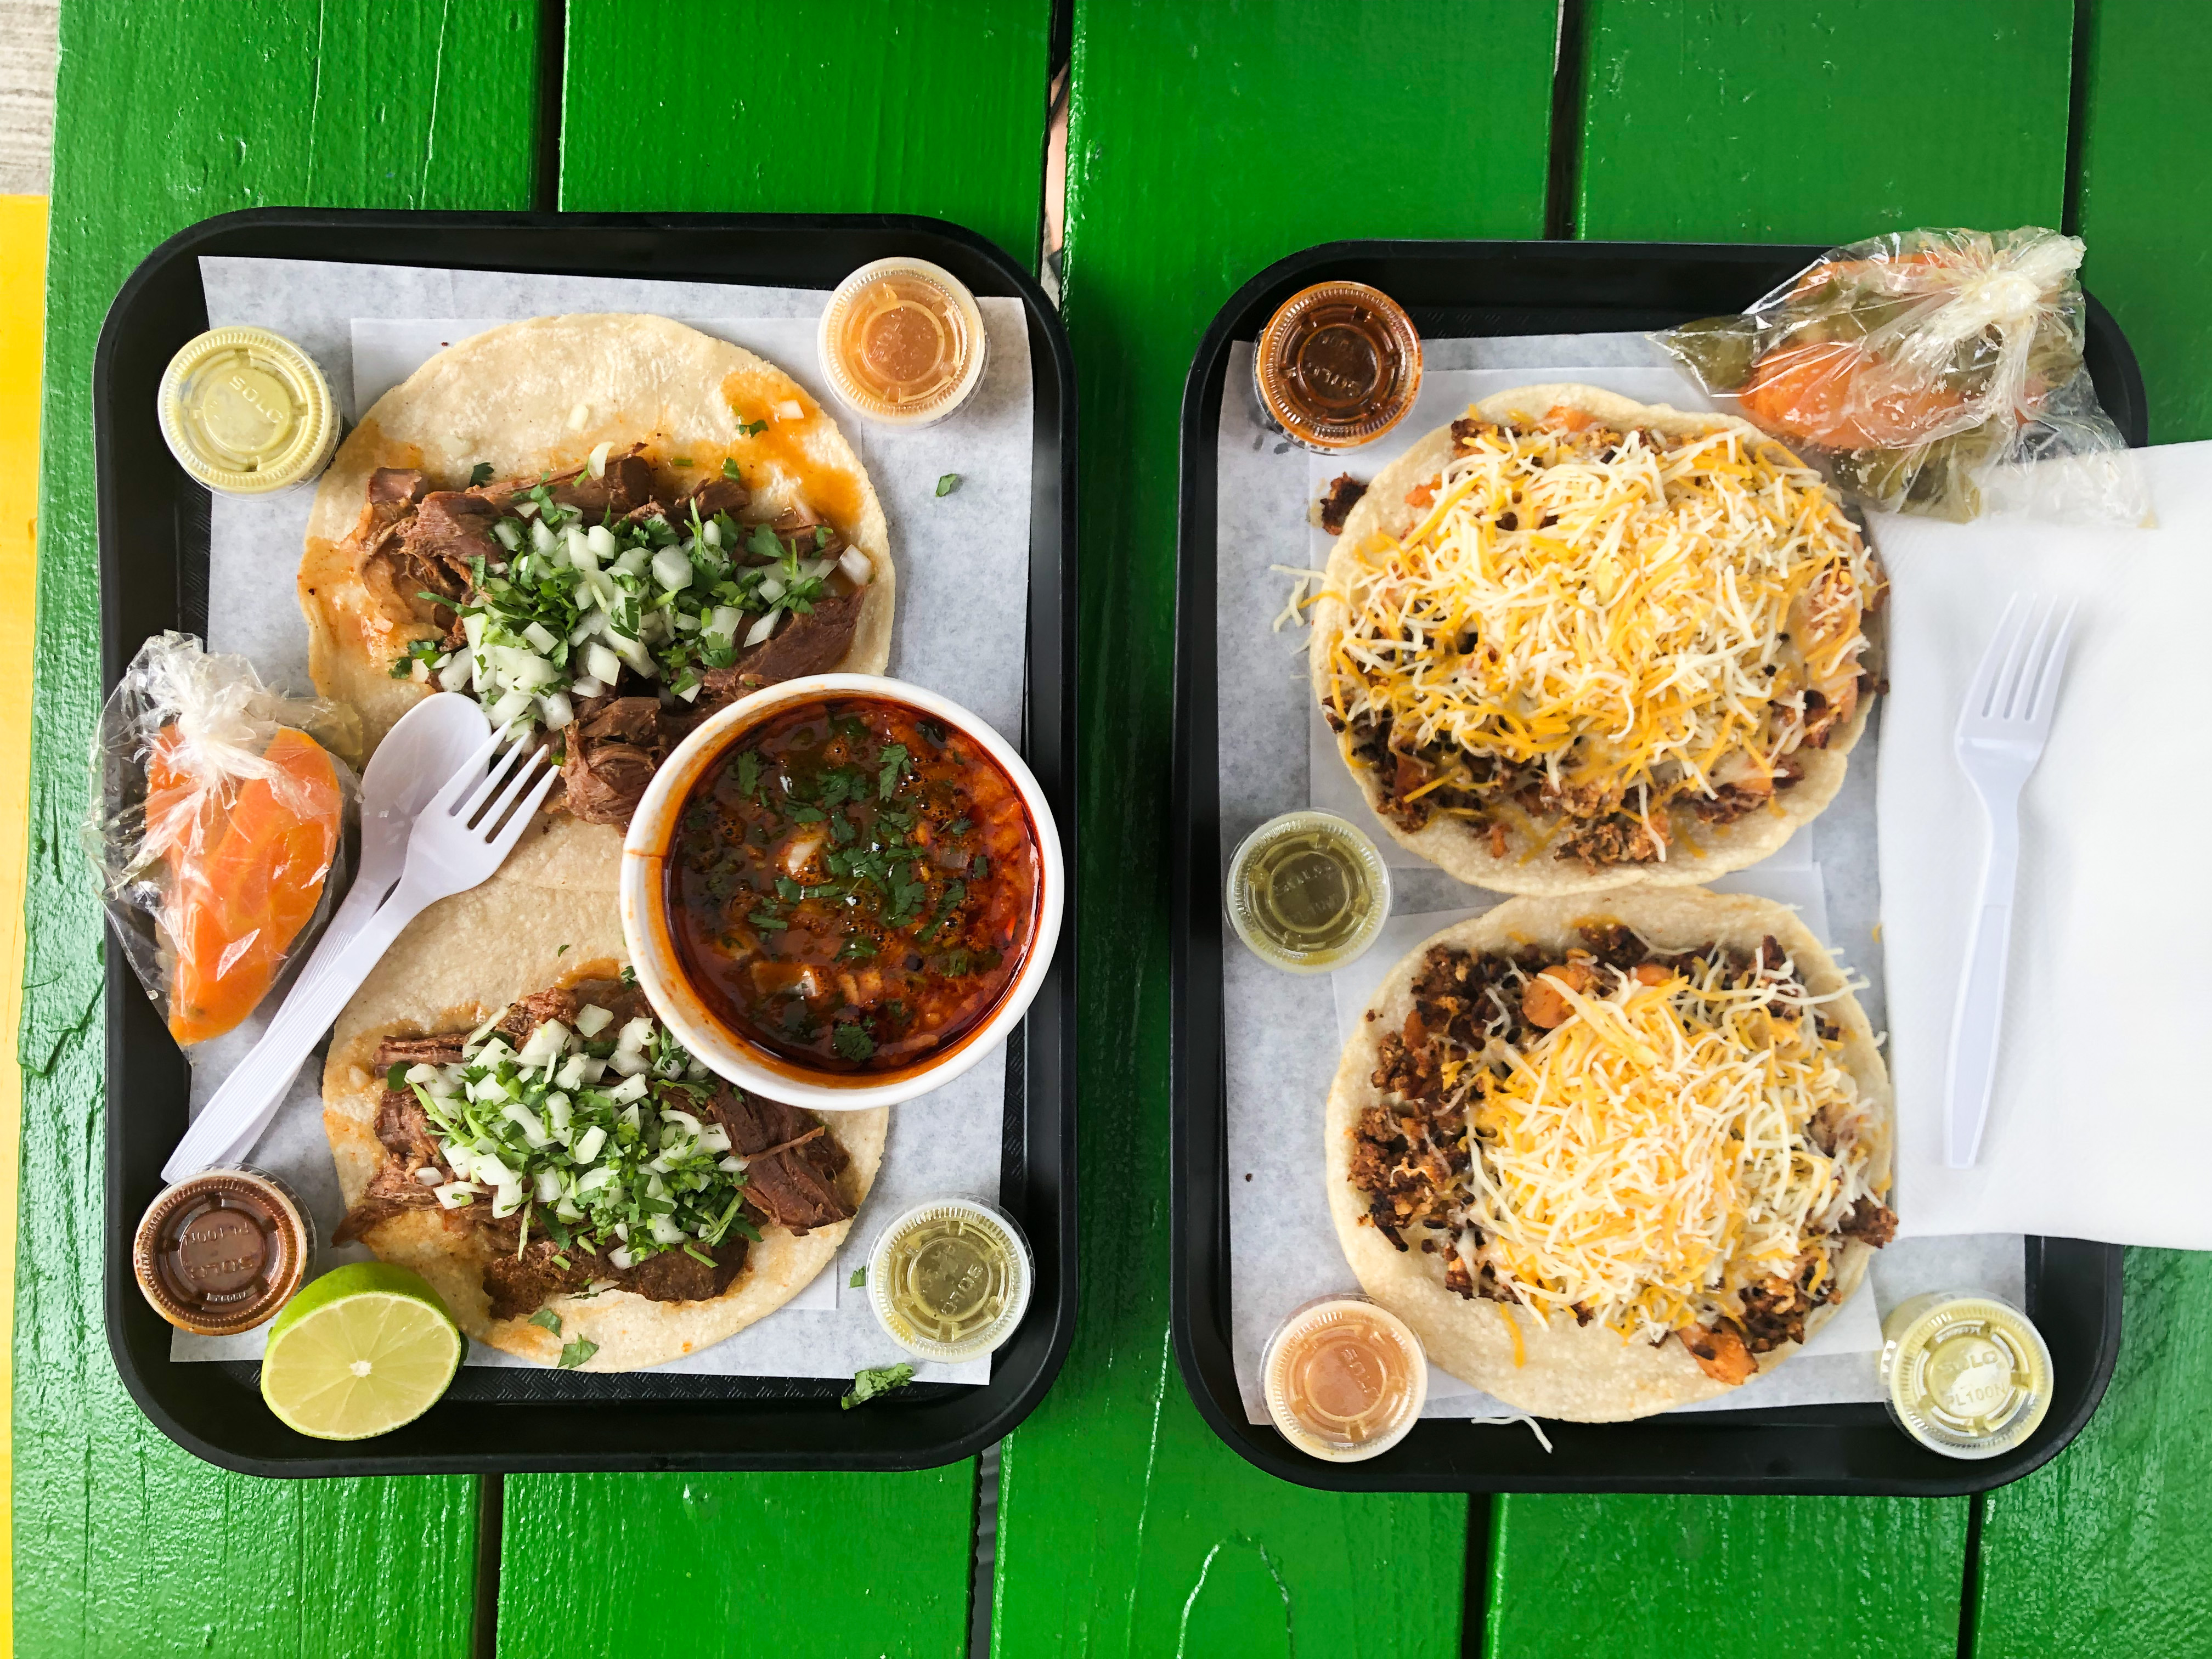 Two birria de chivo tacos sit on a plate next to an AM PM cup of consomme, next to a tray of chorizo con papas tacos with shredded cheddar. The tacos are from Sahuayo Taqueria in Portland, Oregon